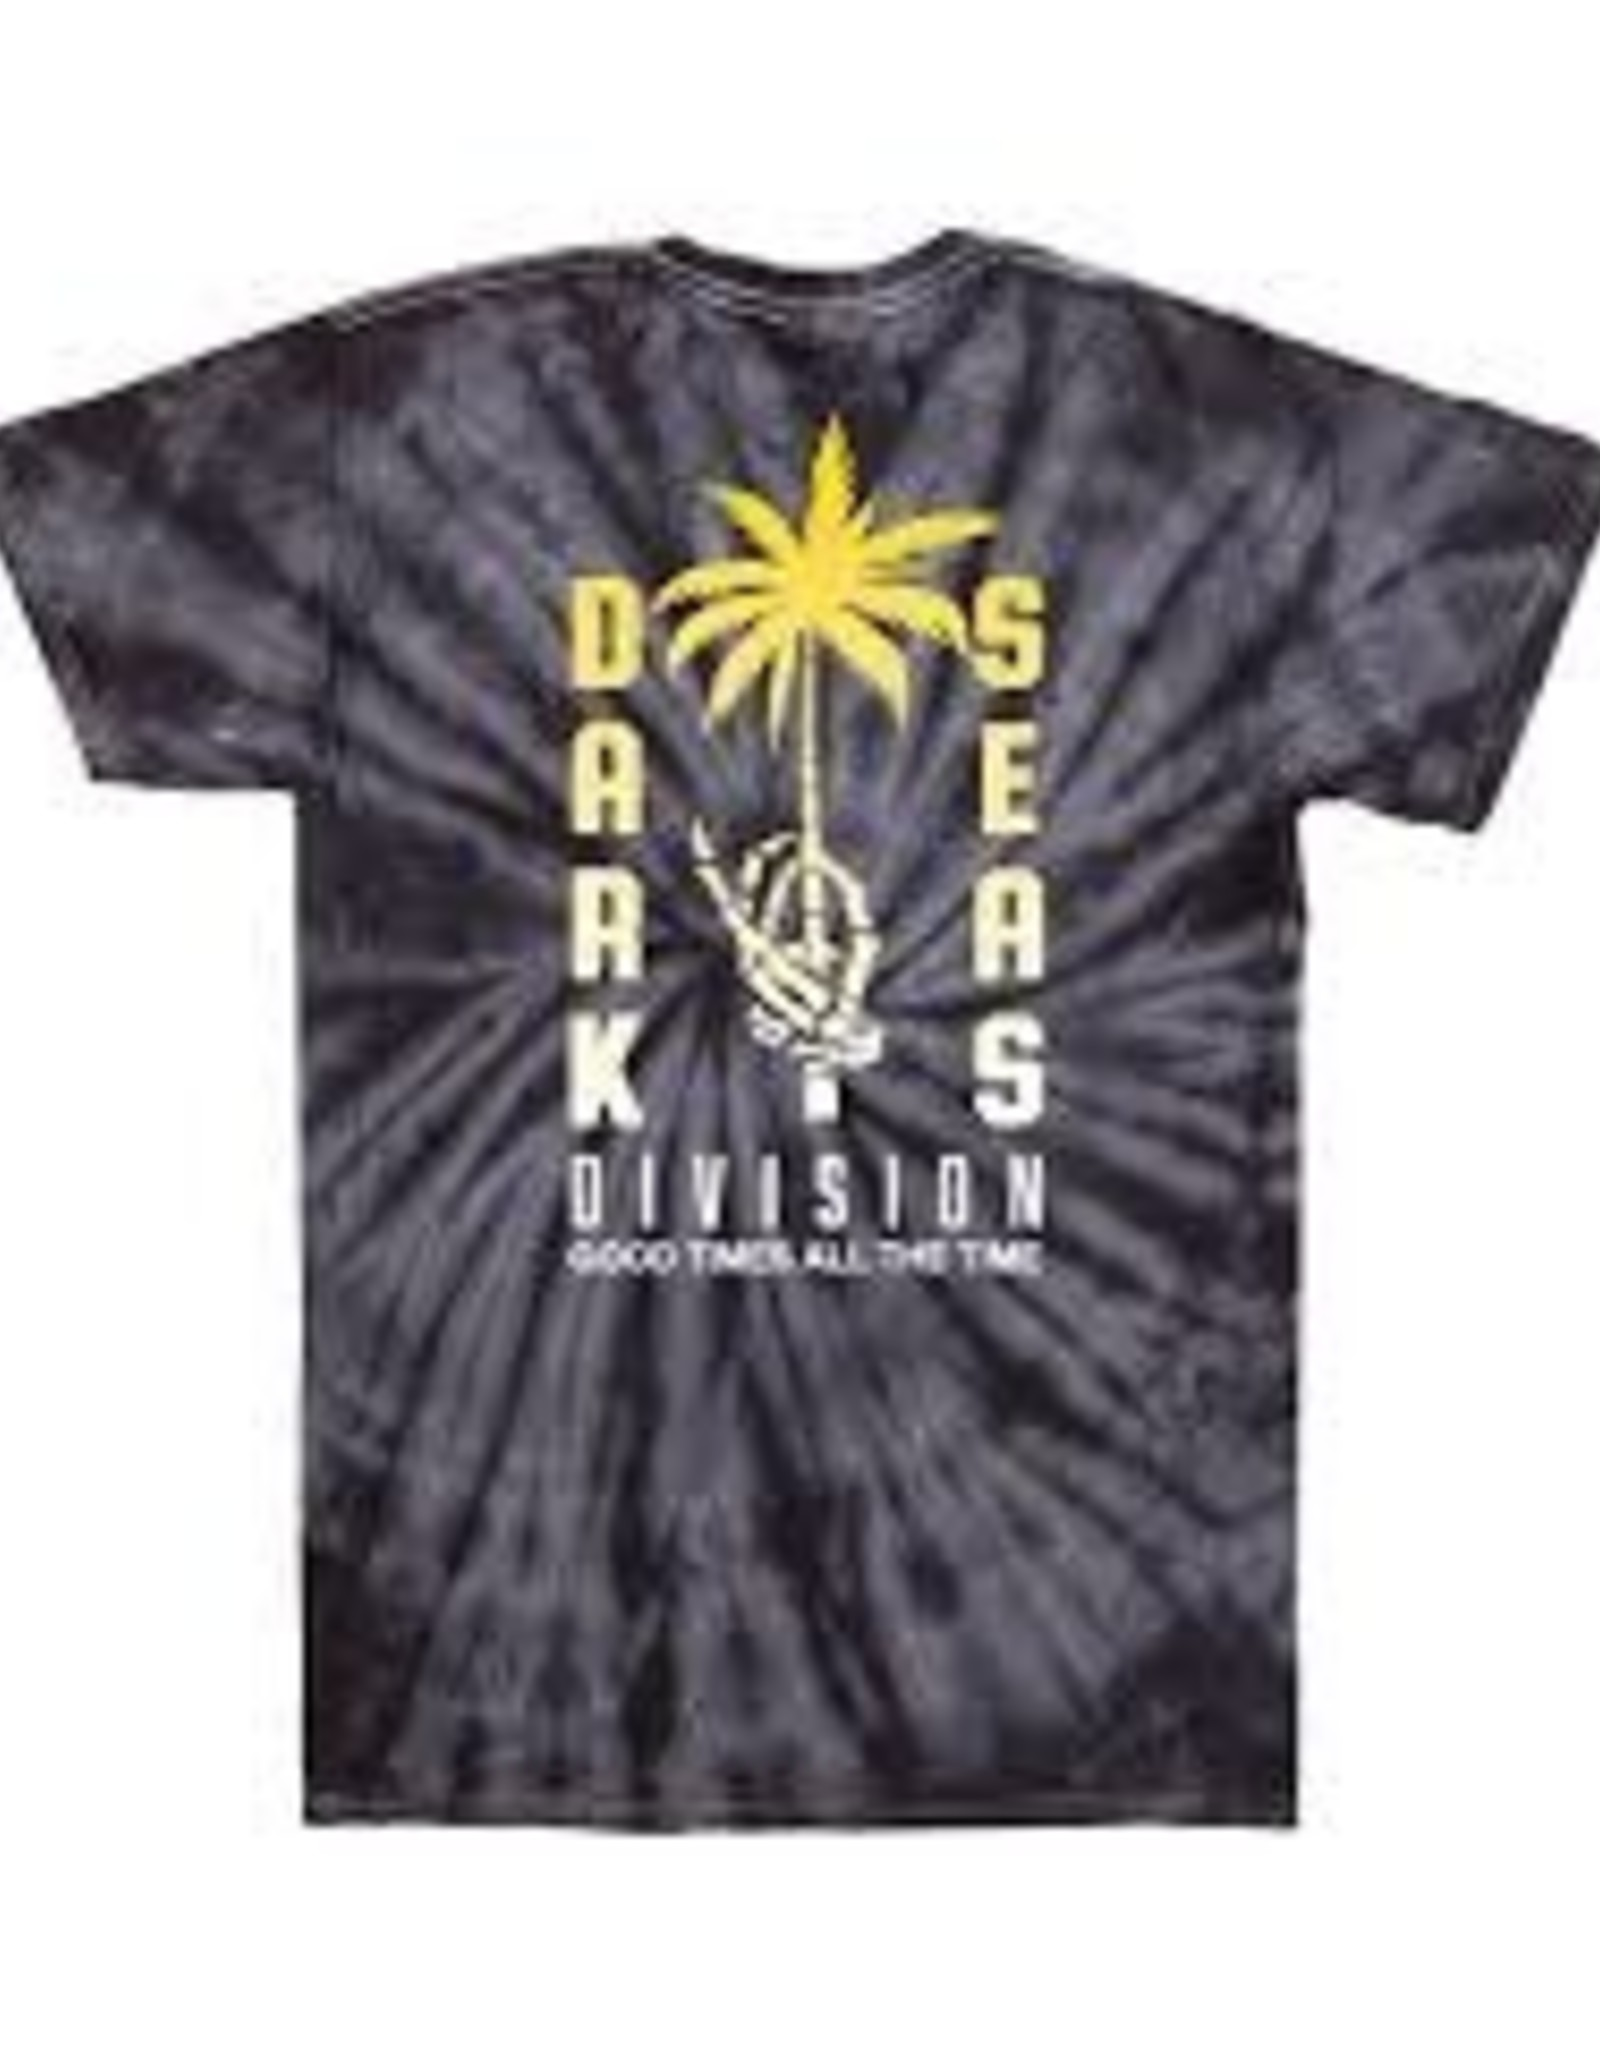 dark seas dark seas illusion tshirt